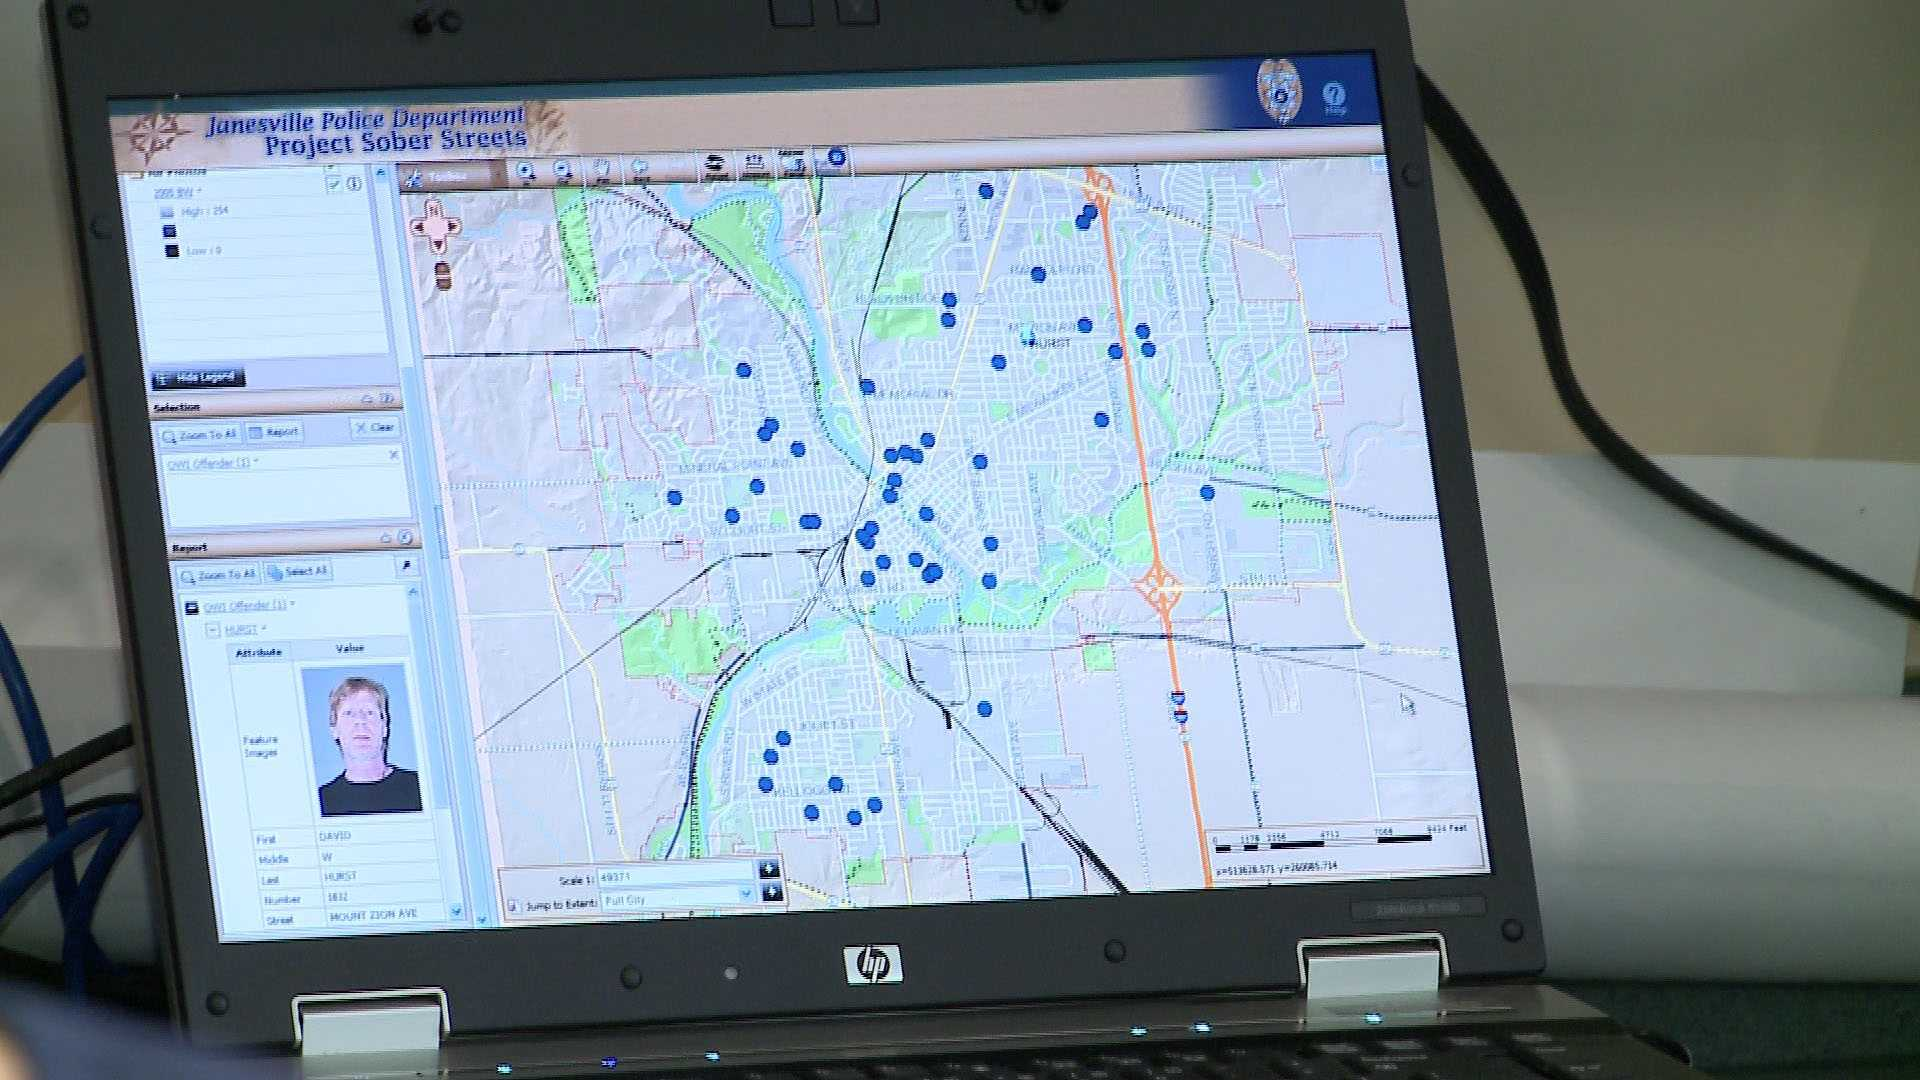 Janesville police provide a map showing residents arrested for drunken driving at least five times in the past five years.